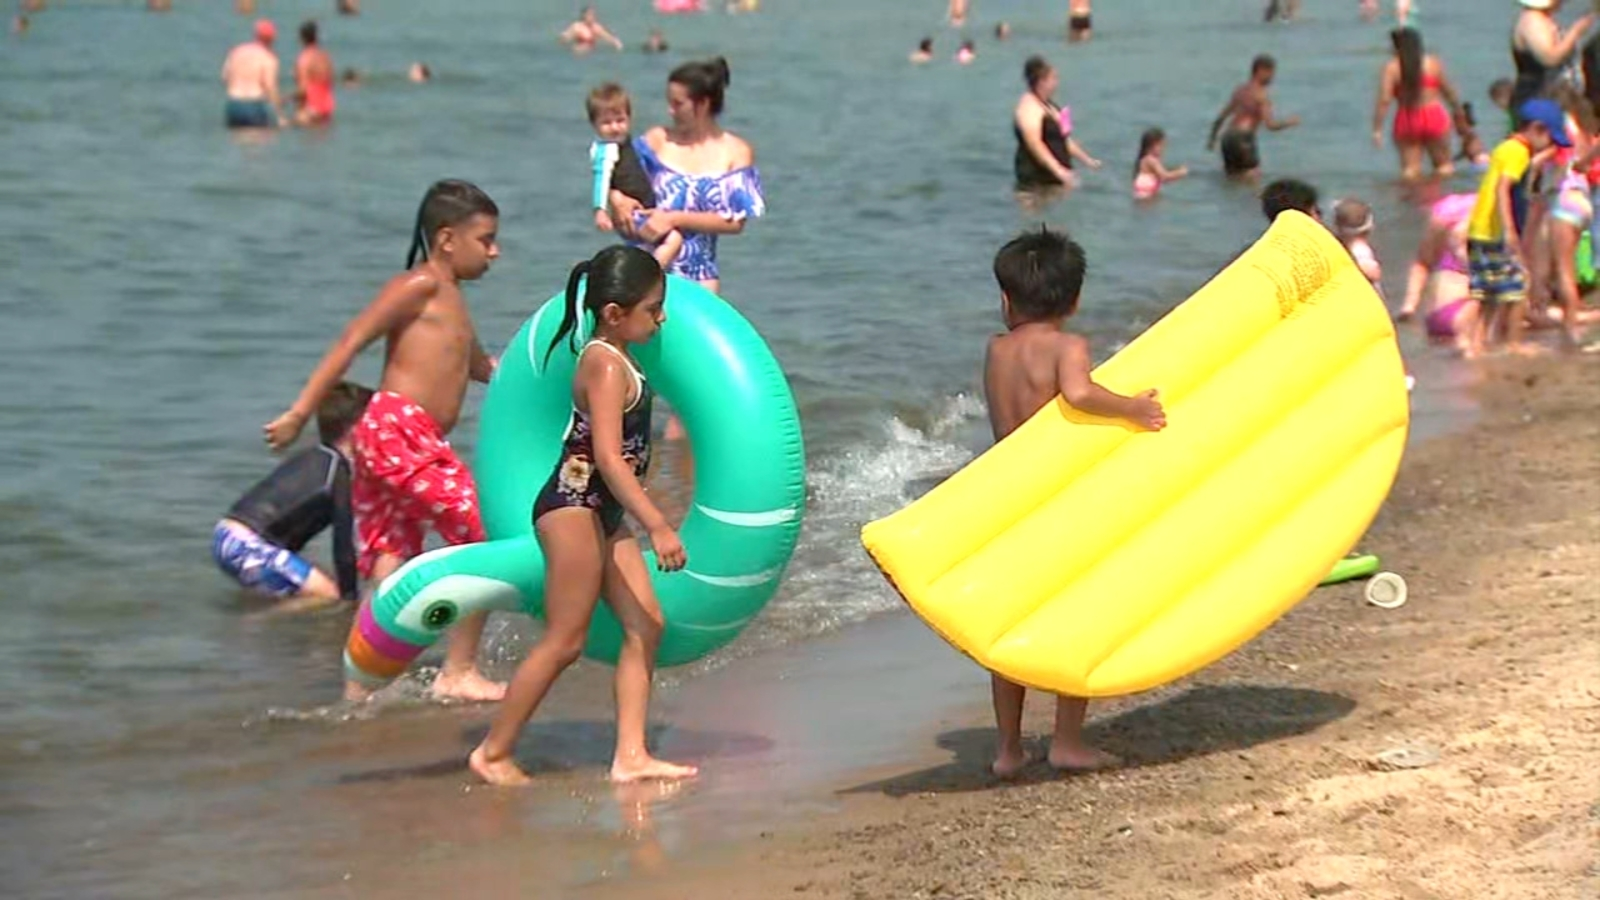 Indiana Dunes National Park offers beaches, hiking all on 1 tank of gas